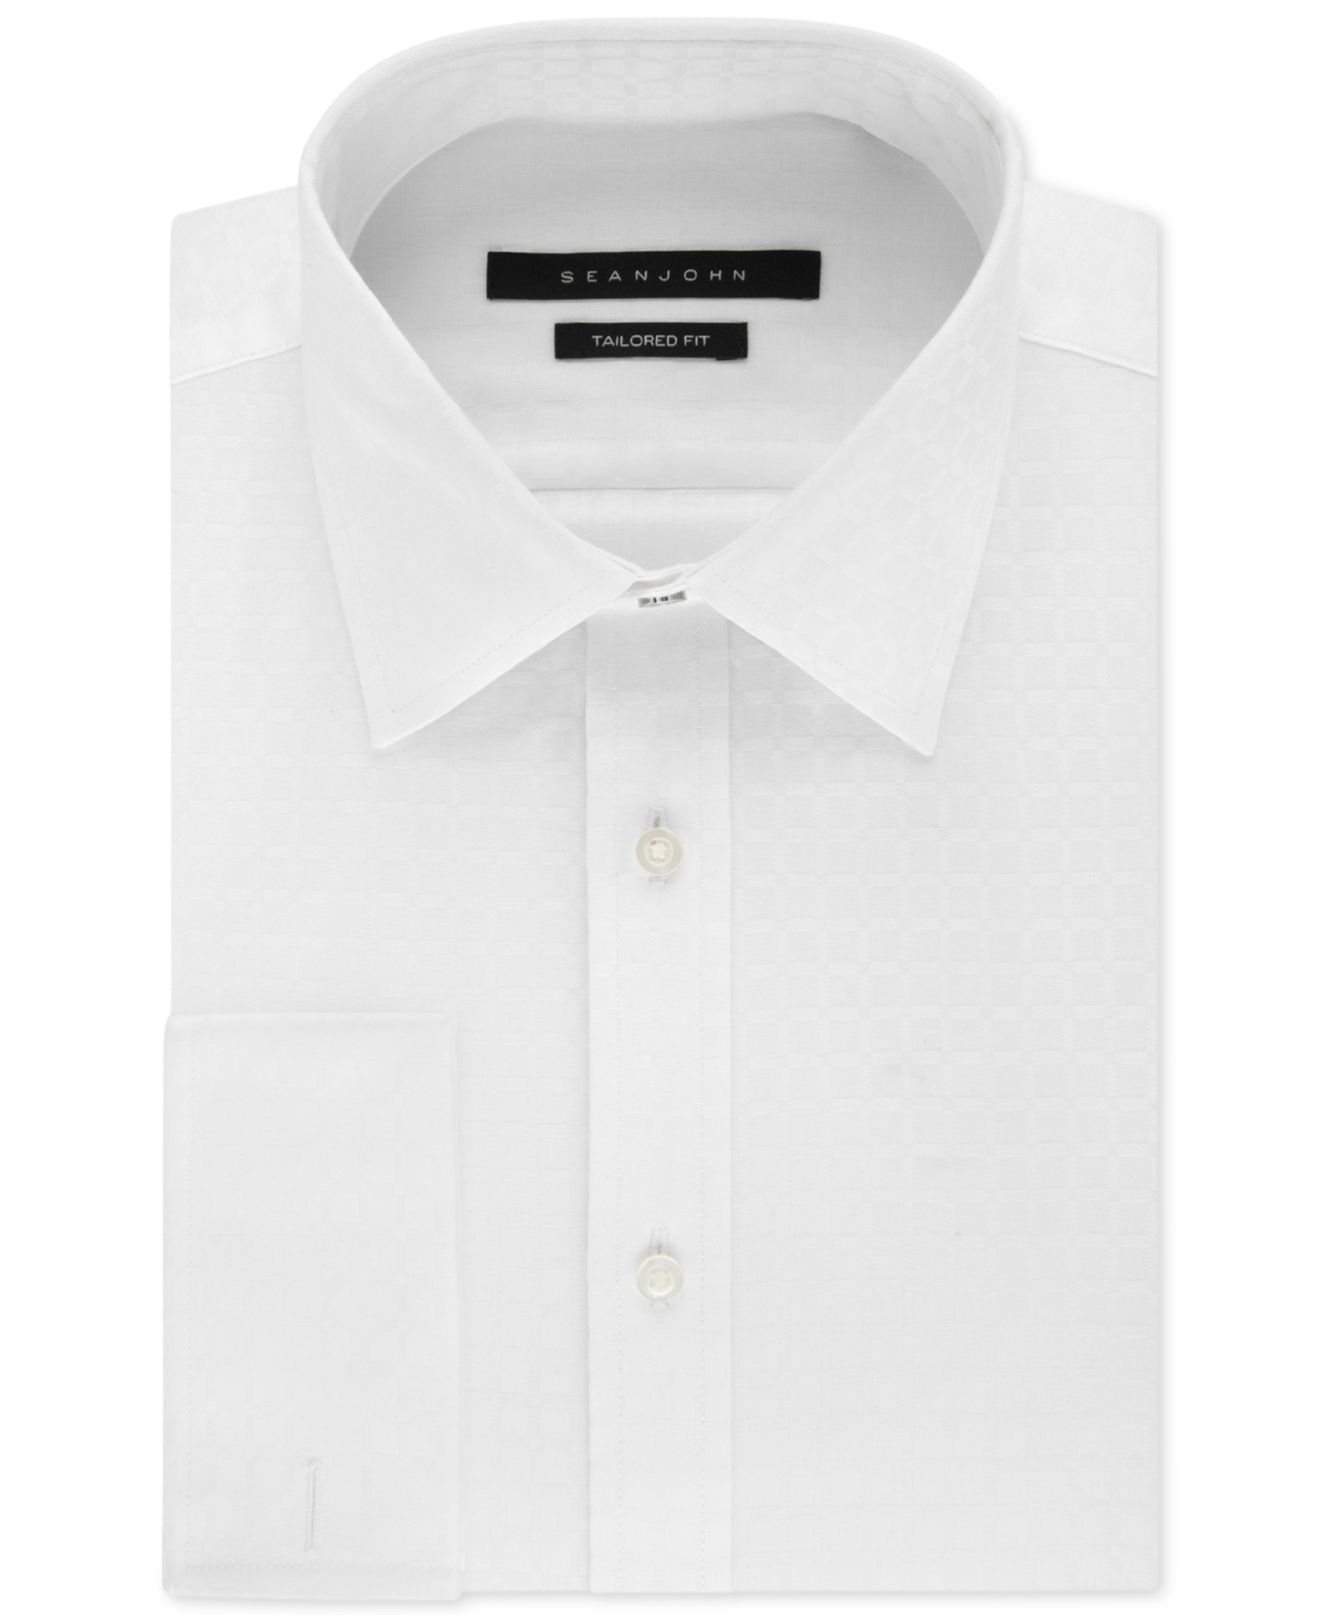 Sean John White Textured Solid French Cuff Dress Shirt In